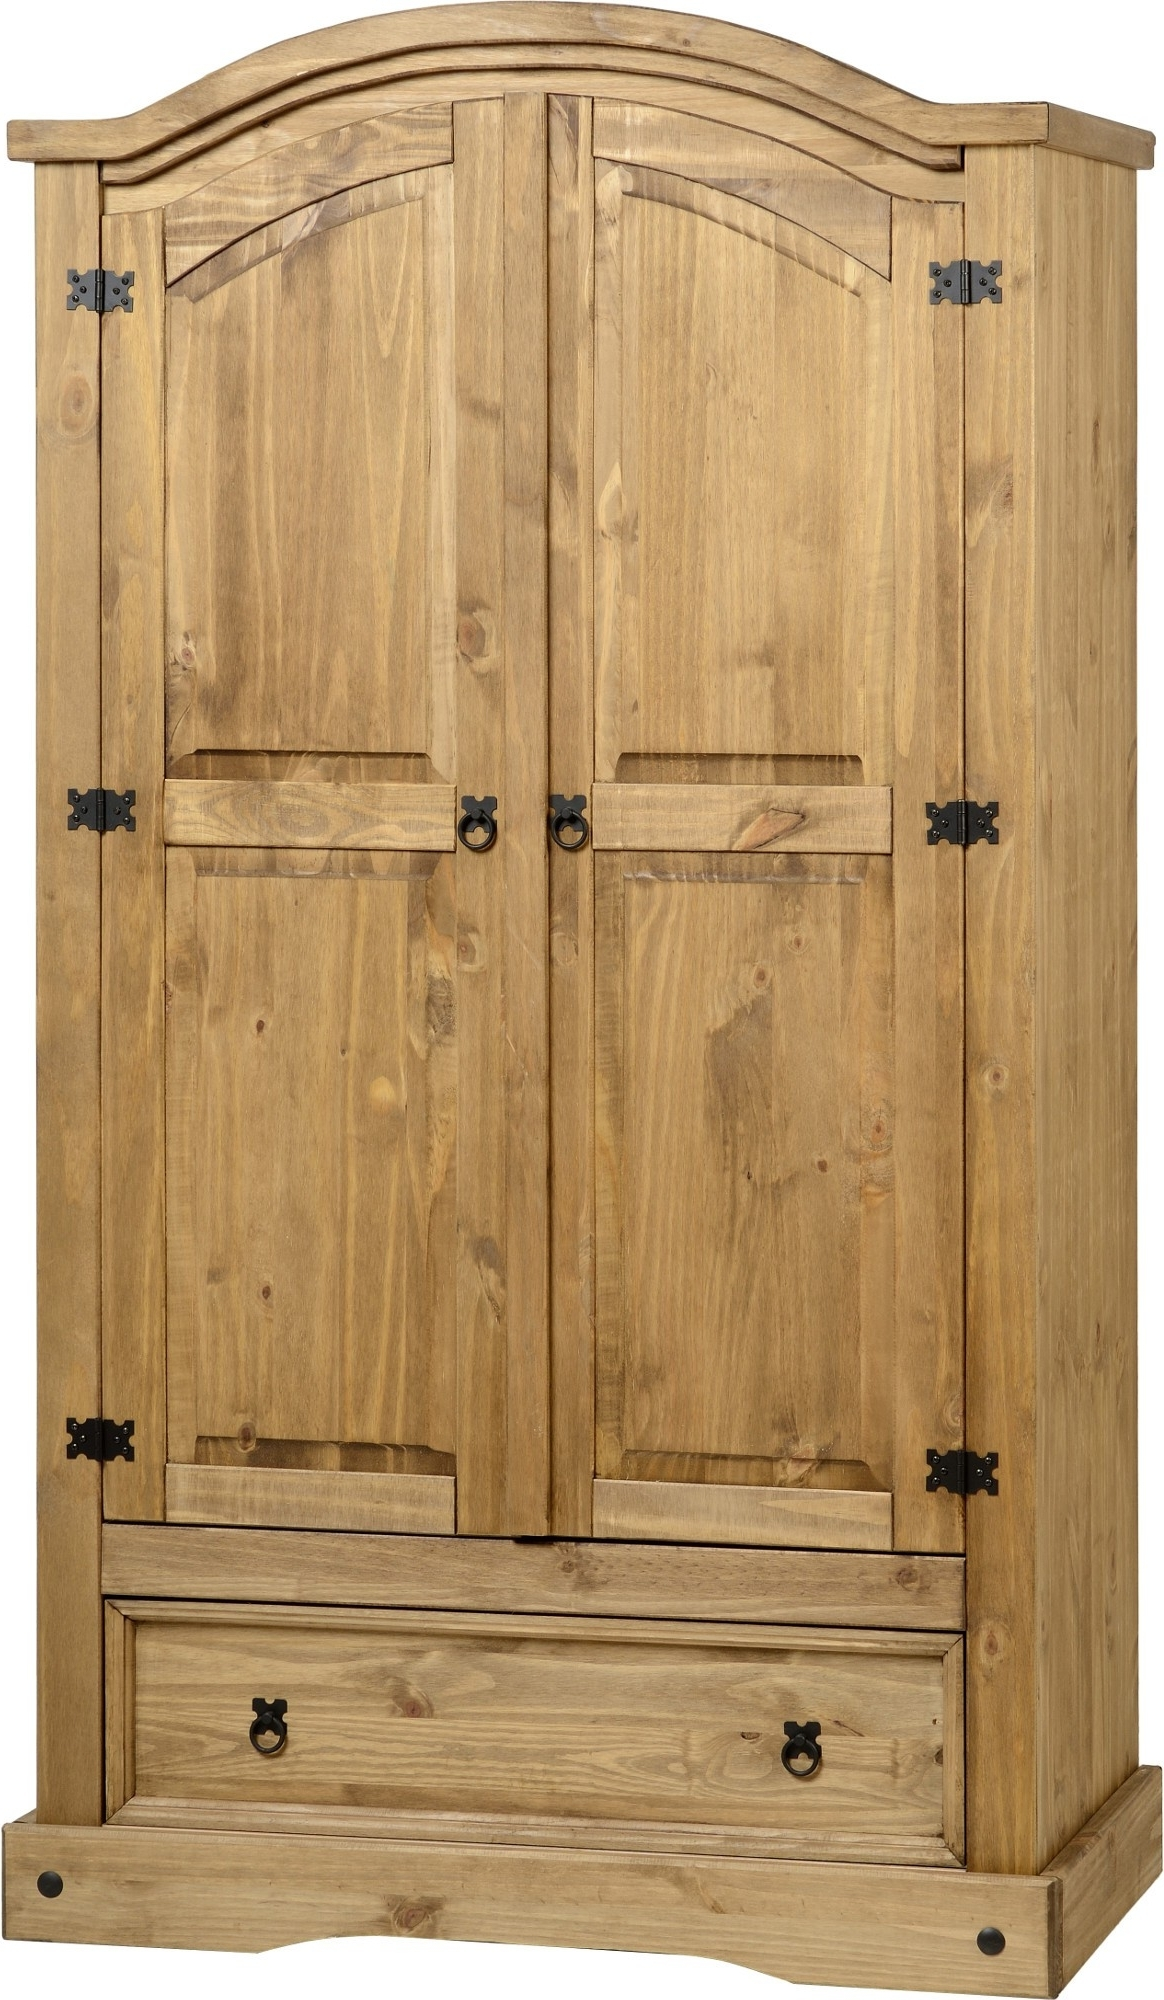 Pine Wardrobes With Drawers In Latest Corona Pine 2 Door Wardrobe With Drawer – Default Store View (View 10 of 15)